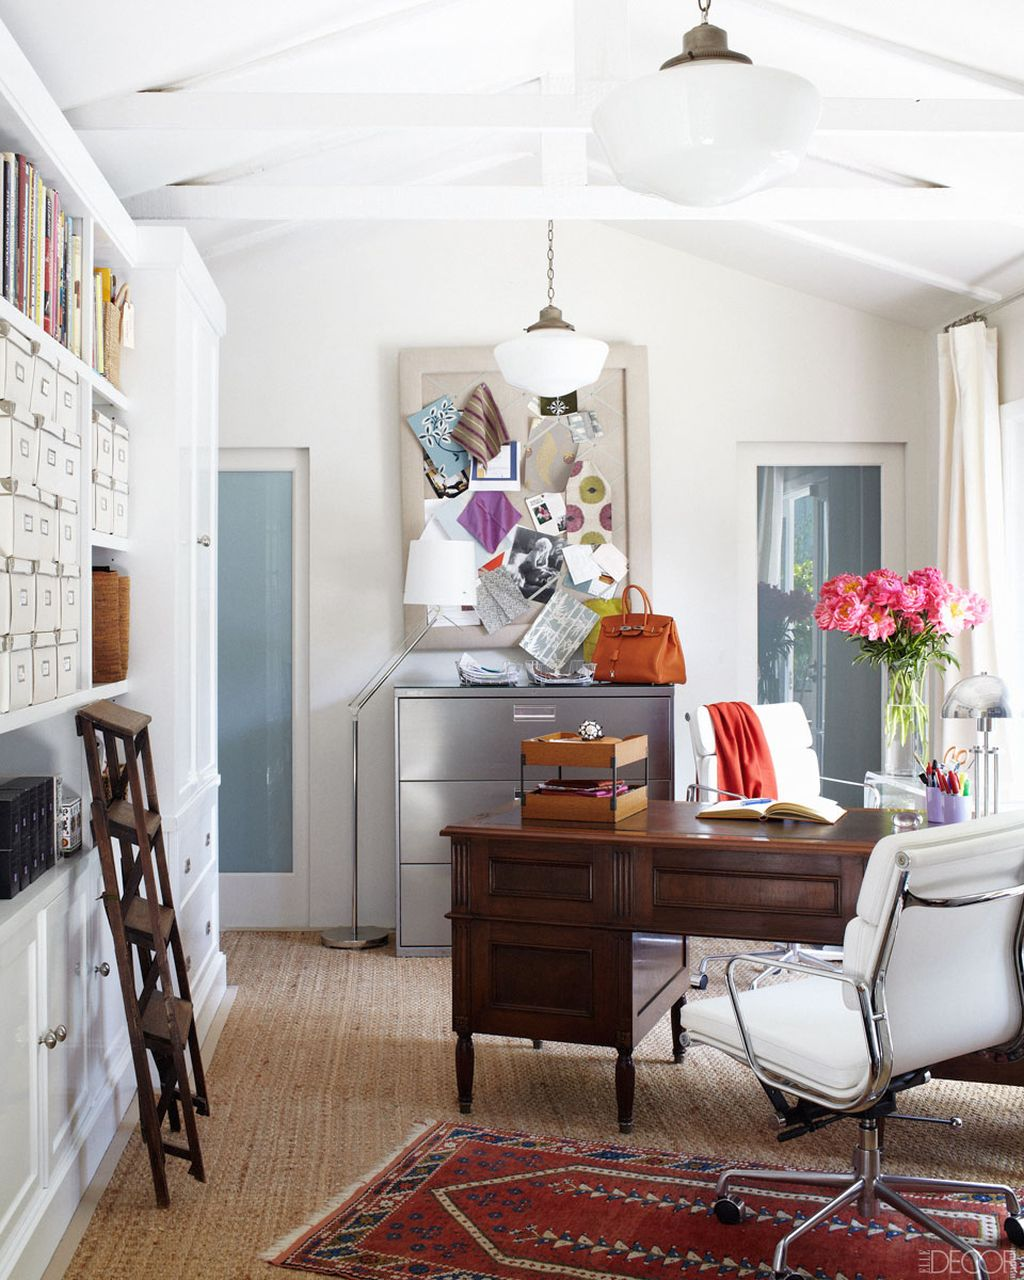 Home Office Space Ideas: 20 Inspiring Home Office Design Ideas For Small Spaces